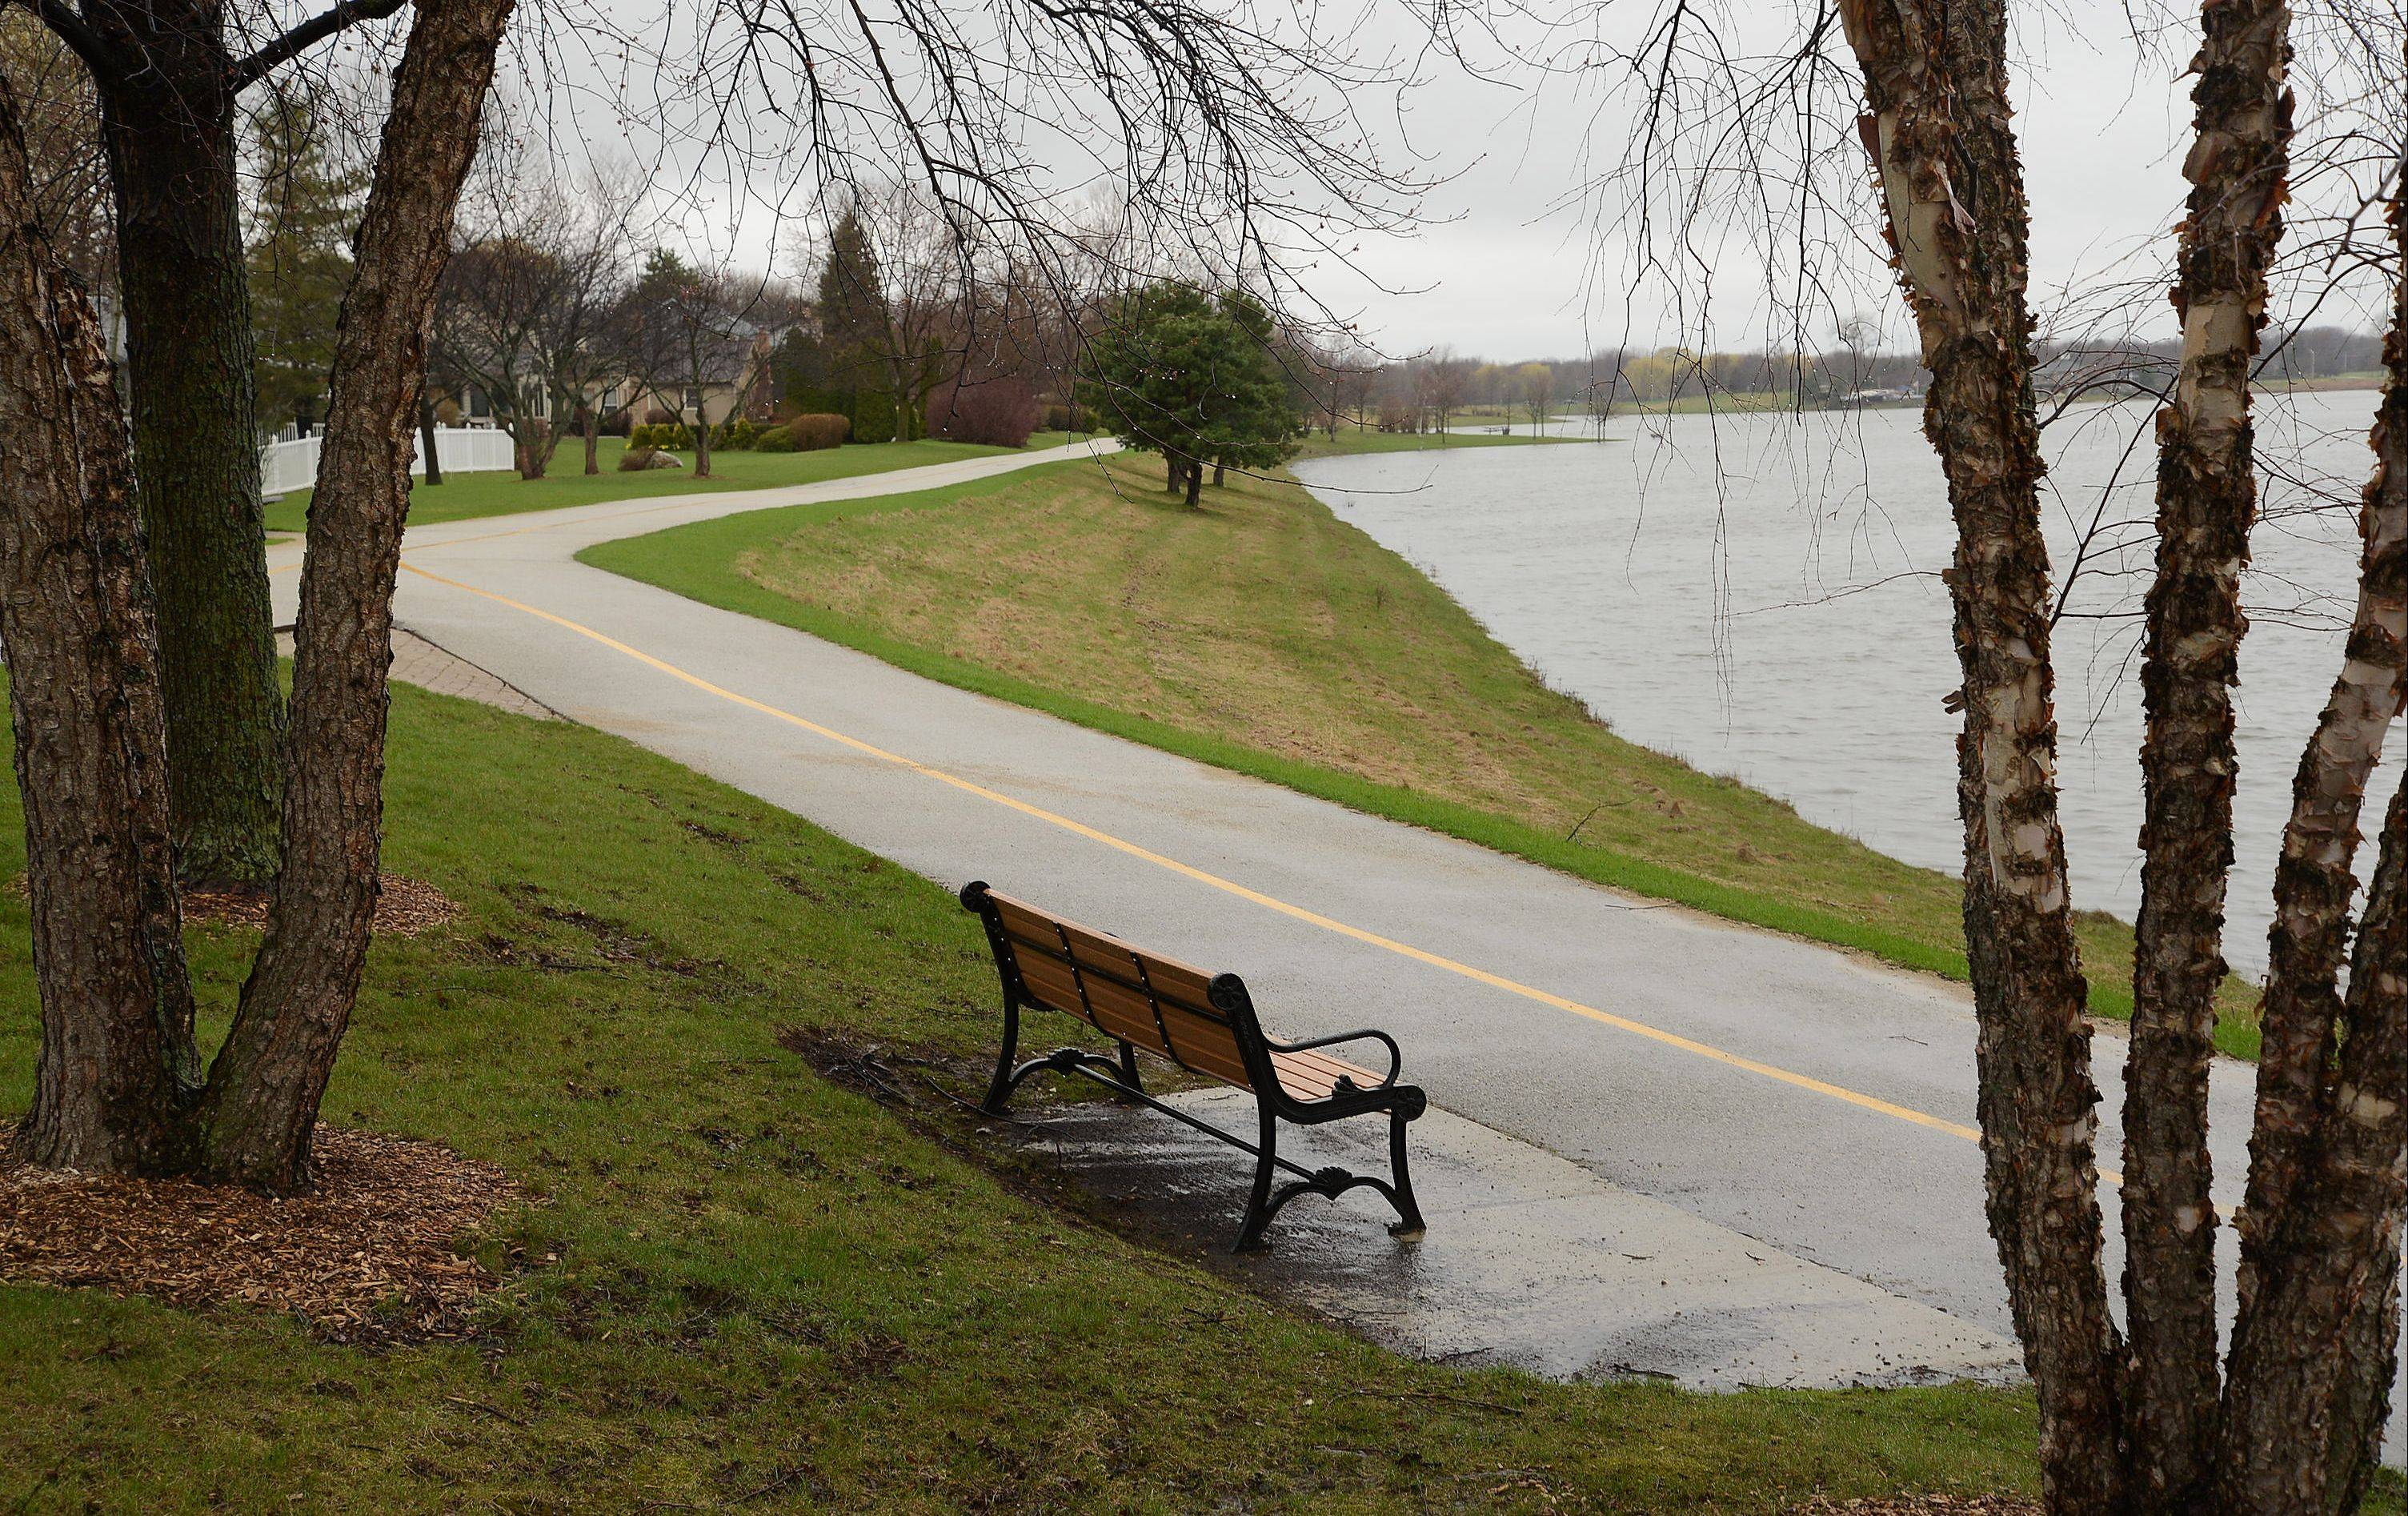 Arlington Heights Park District officials say they will again look at how to increase safety at Lake Arlington after a woman who was hit in June by an 11-year-old cyclist died last week.